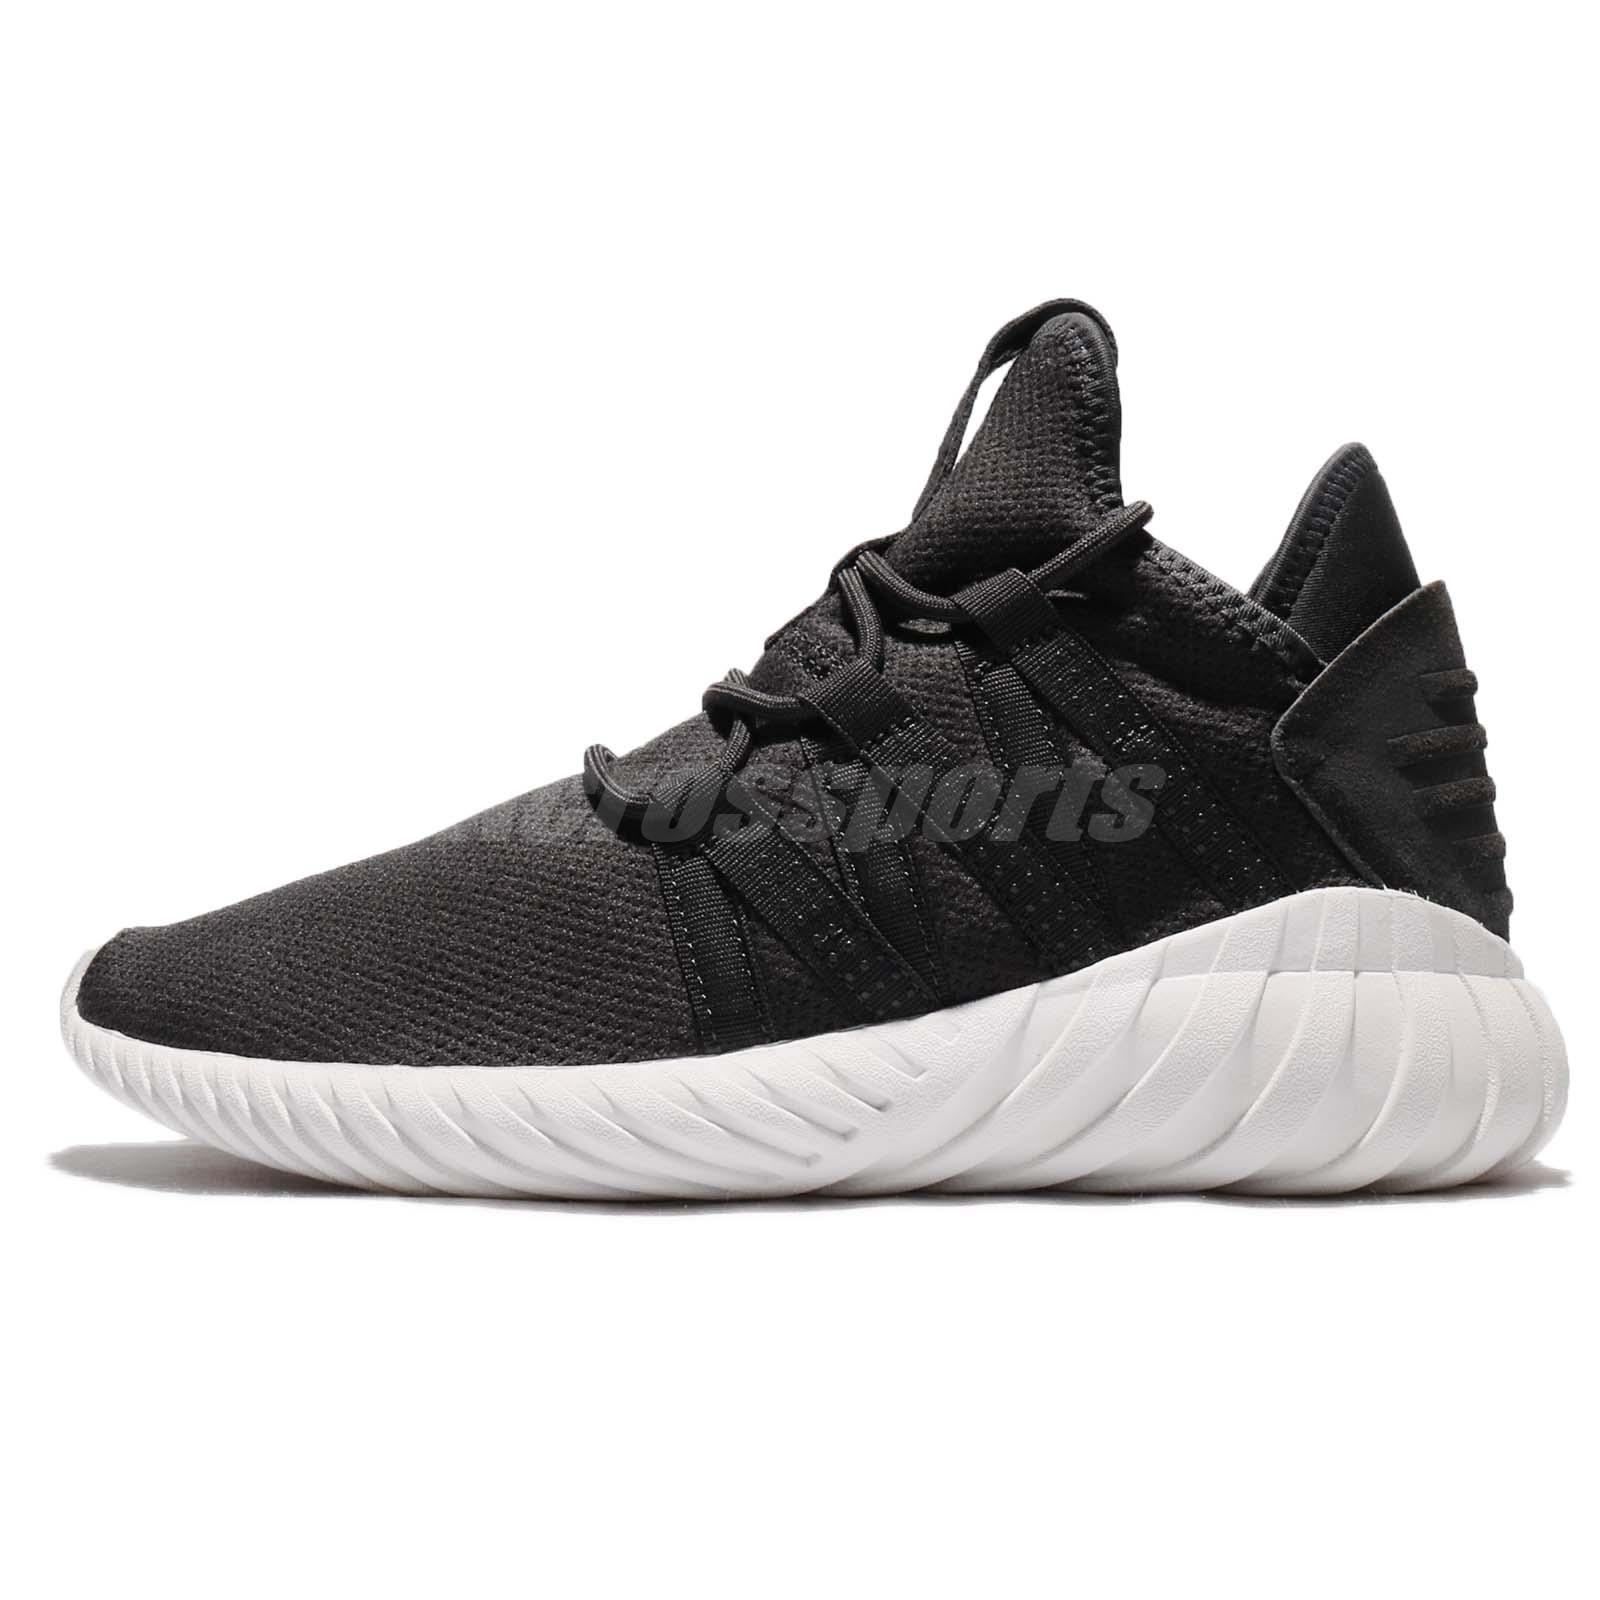 Tubular Dawn Lifestyle Shoes adidas US